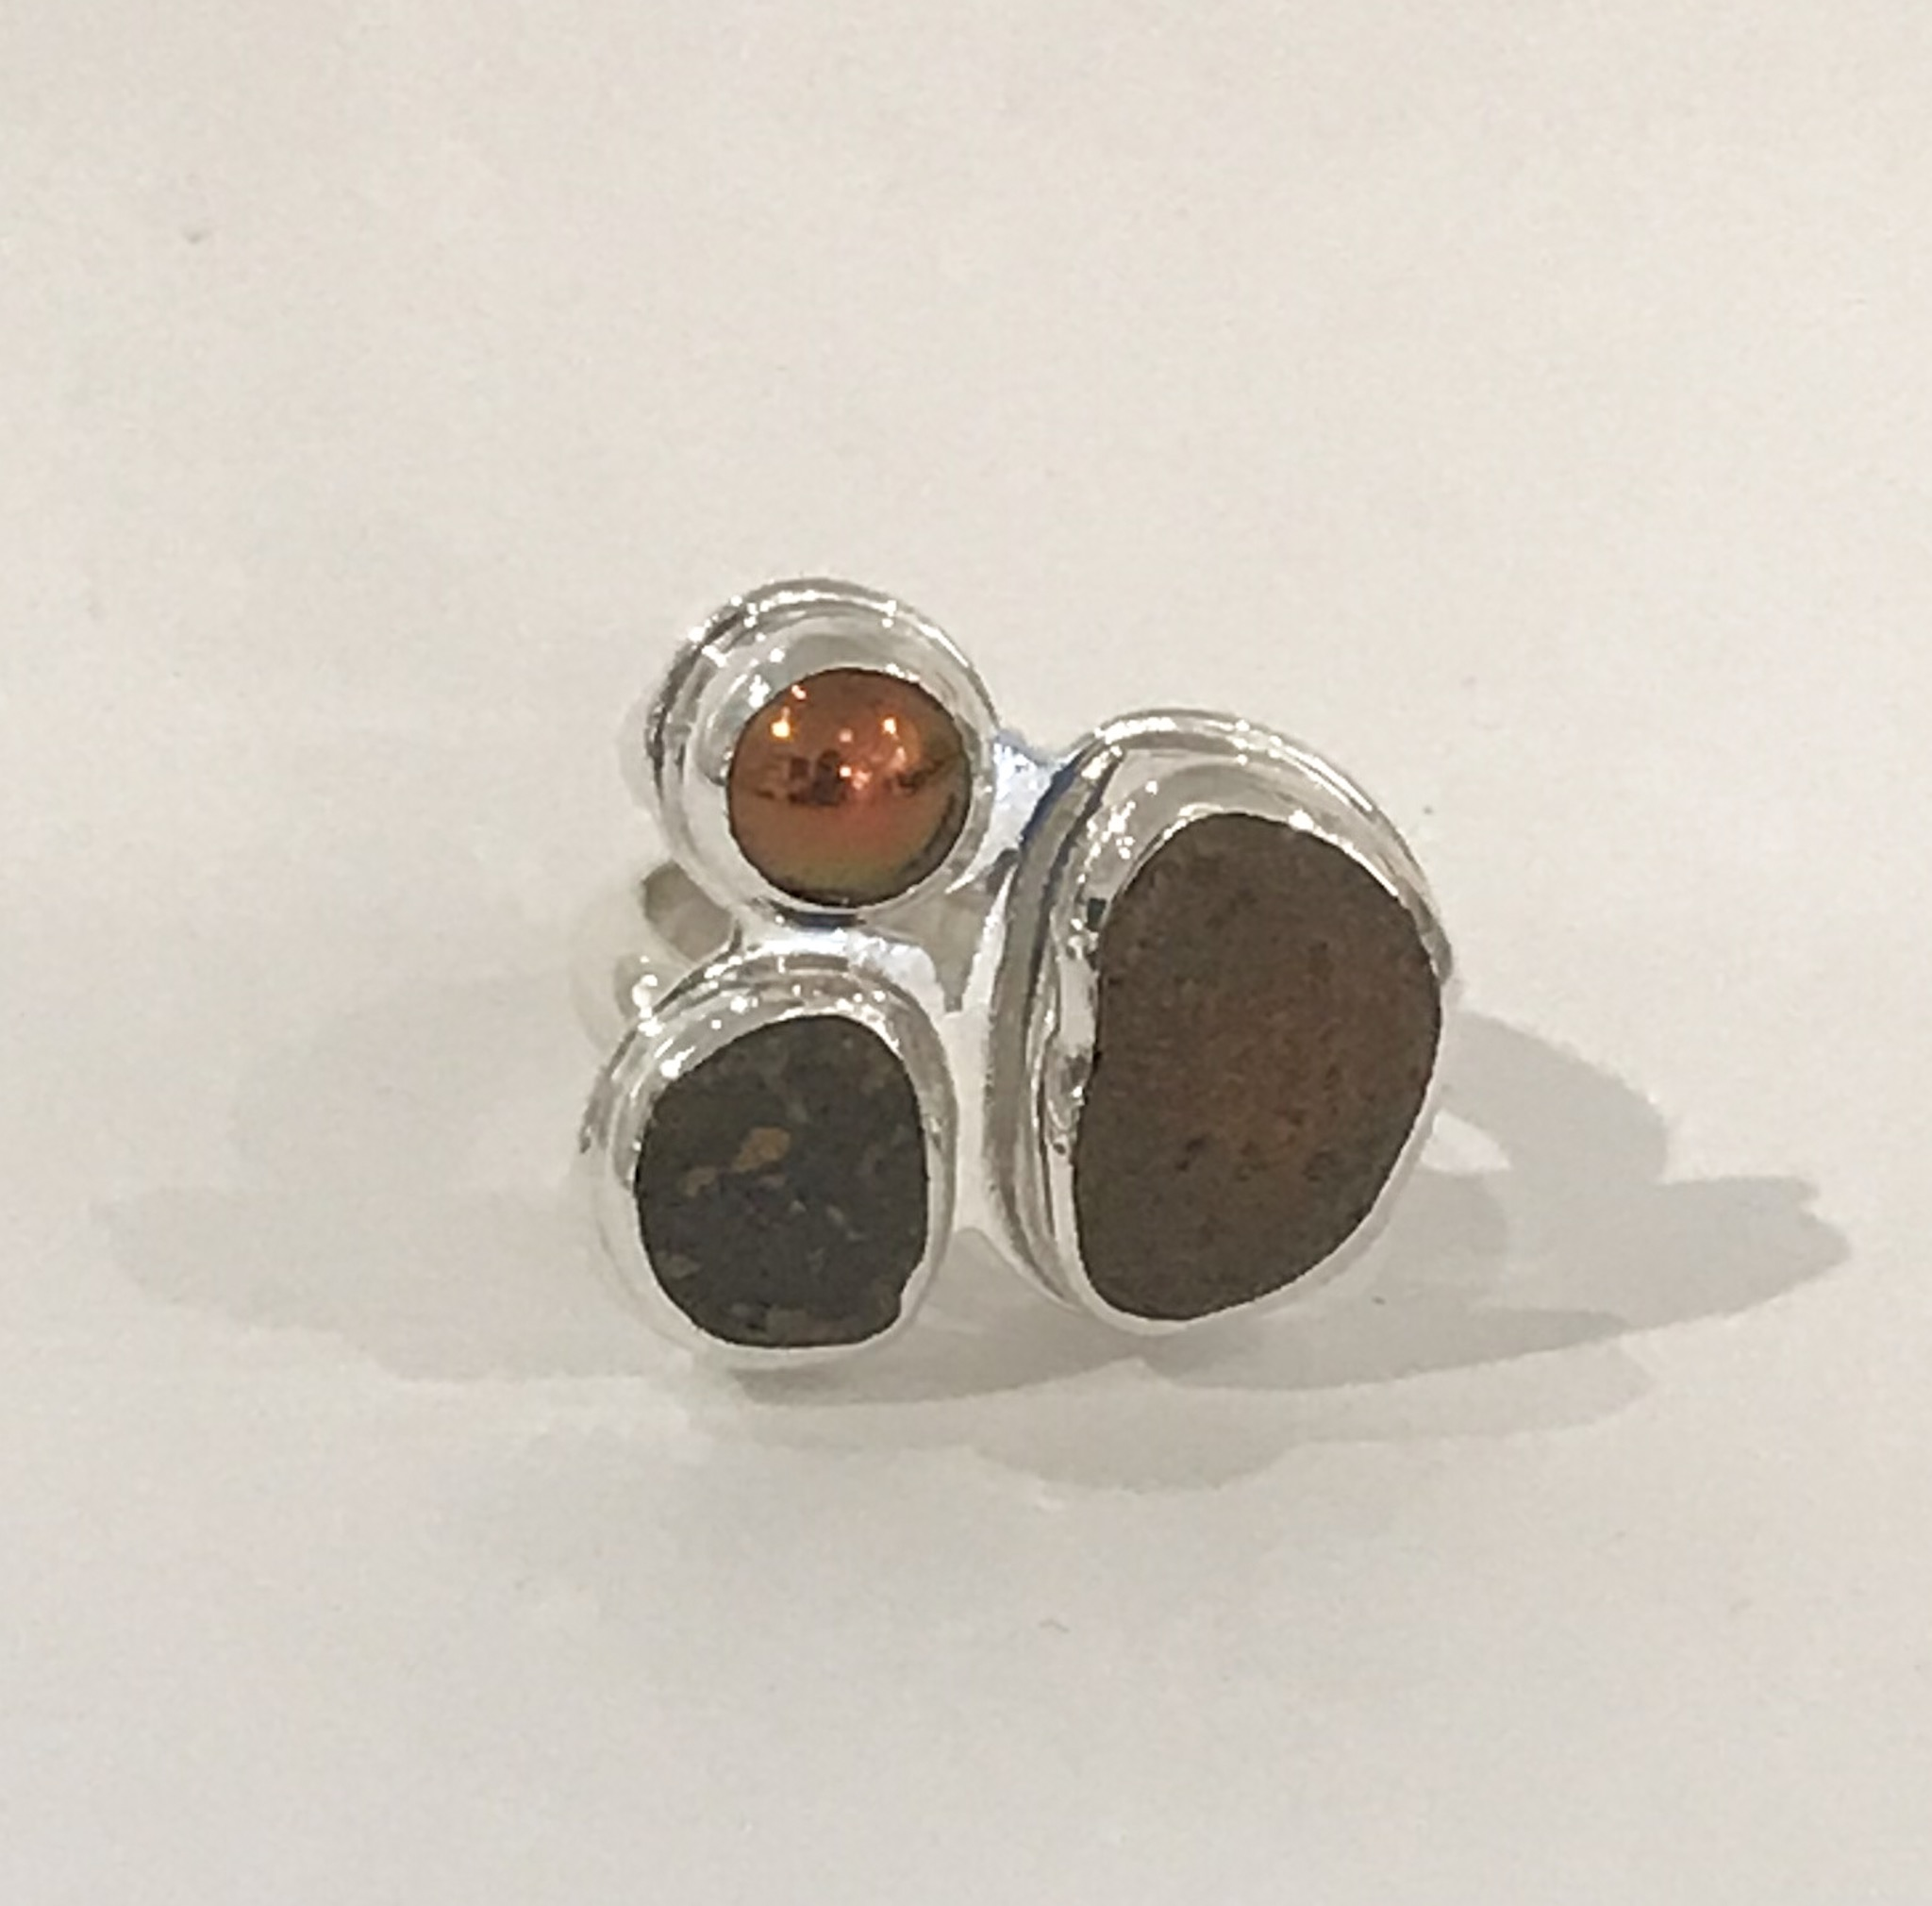 Sterling silver ring set with two beach stones and bronze freshwater pearl, size 5 1/2, $240